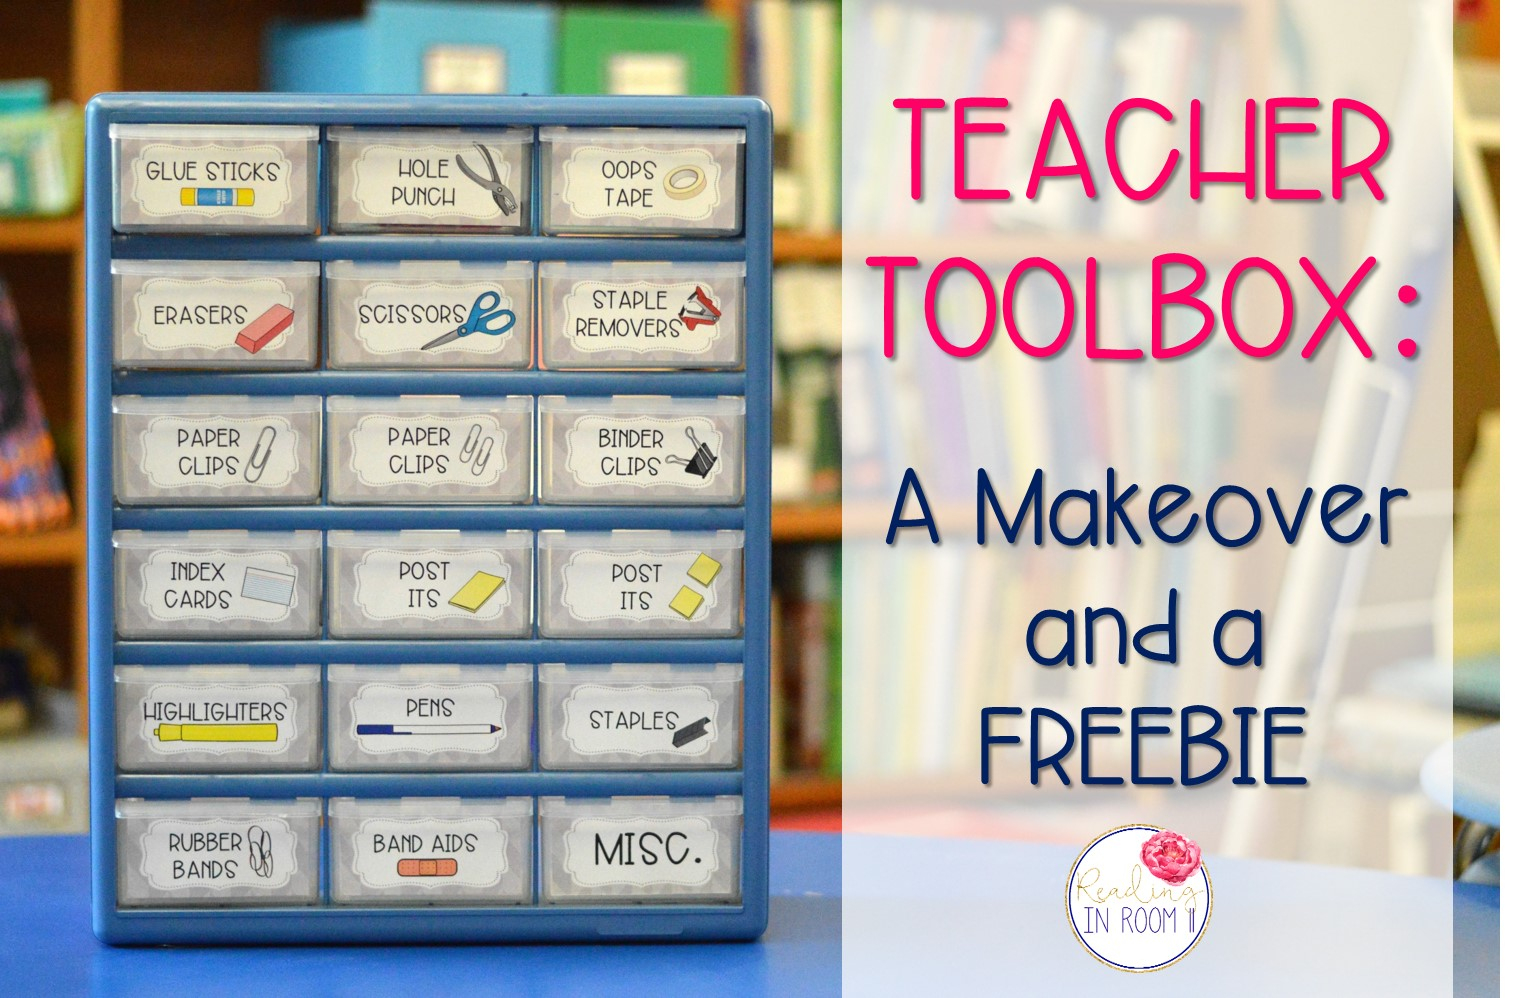 Printable Labels For Teacher Toolbox | Download Them Or Print - Free Printable Teacher Toolbox Labels